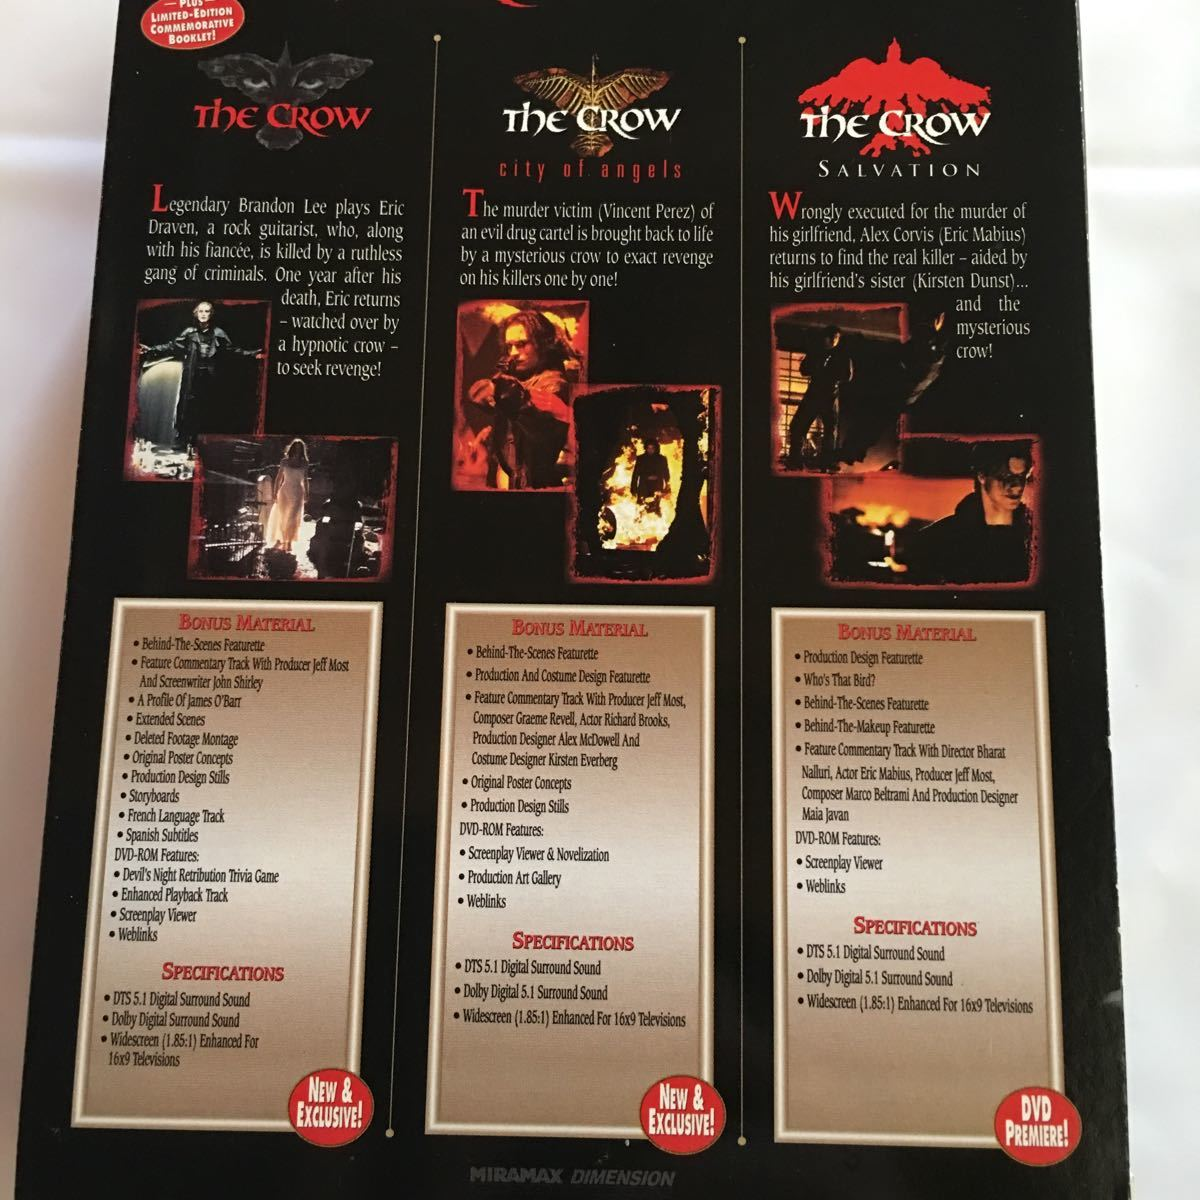 ②DVD ブランドン・リー The Crow (Collector's Series Boxed Set) US輸入盤 リージョン1対応 送料無料